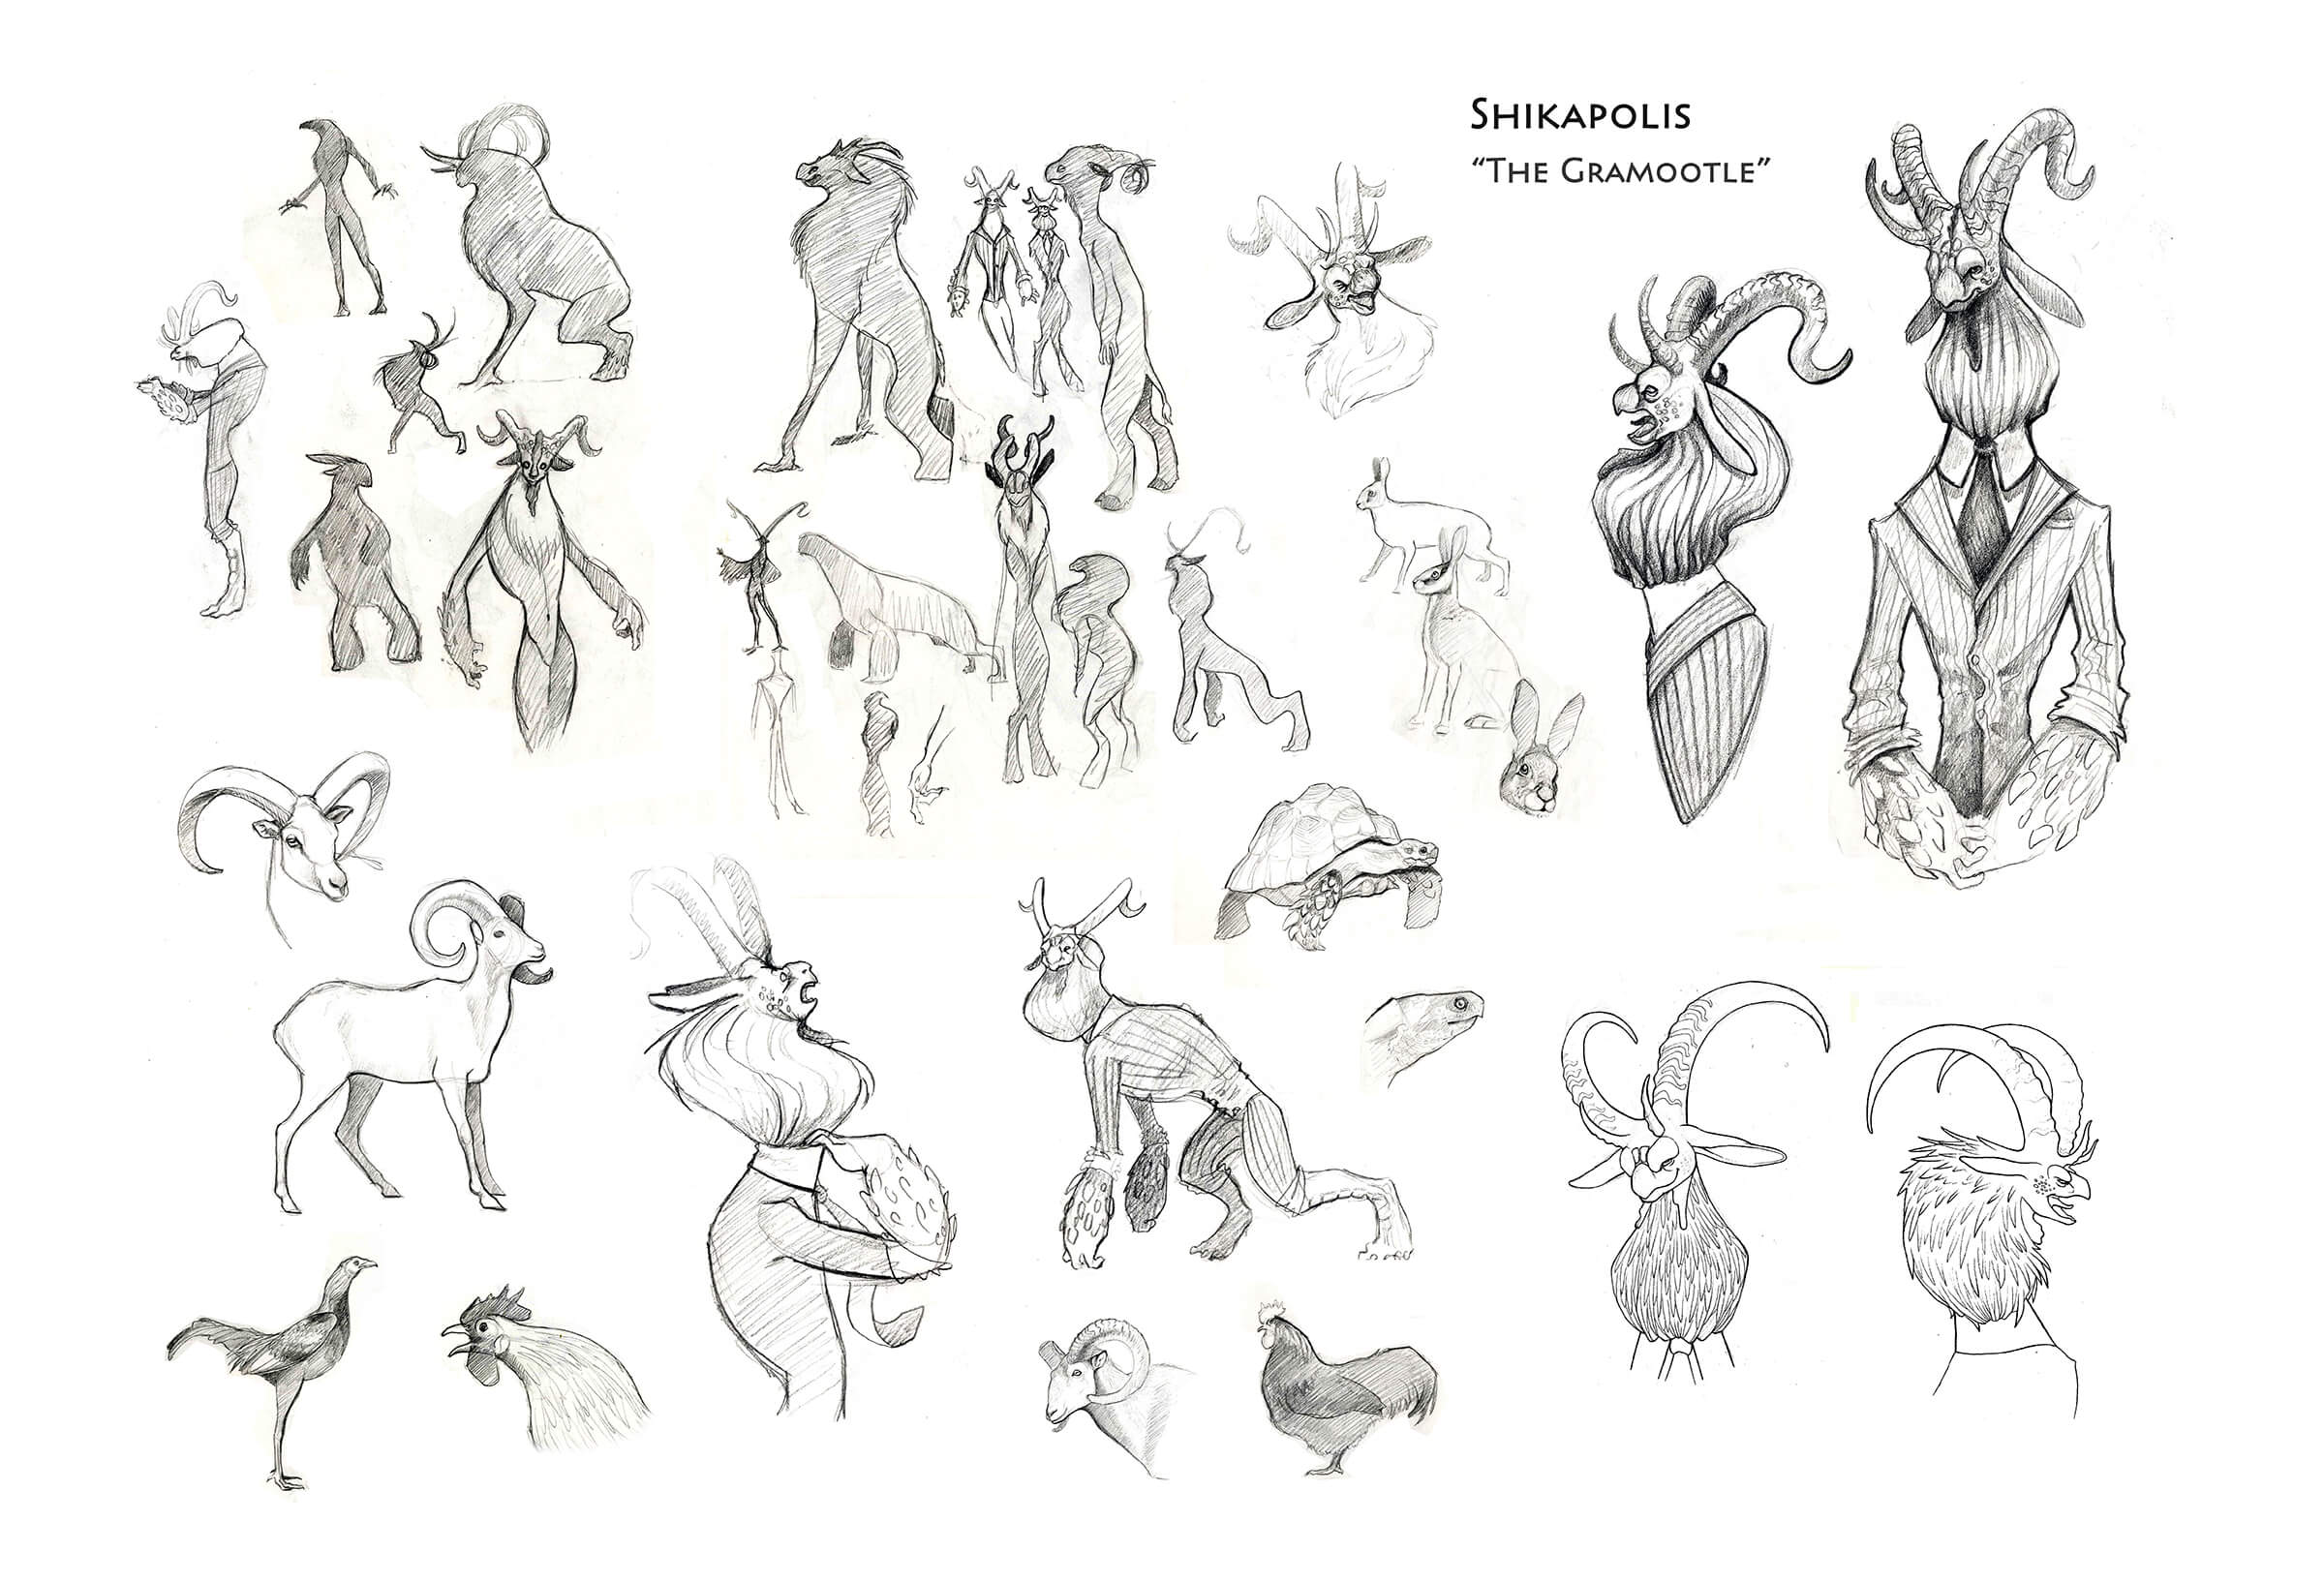 digital painting of a creature resembling an antelope in various poses